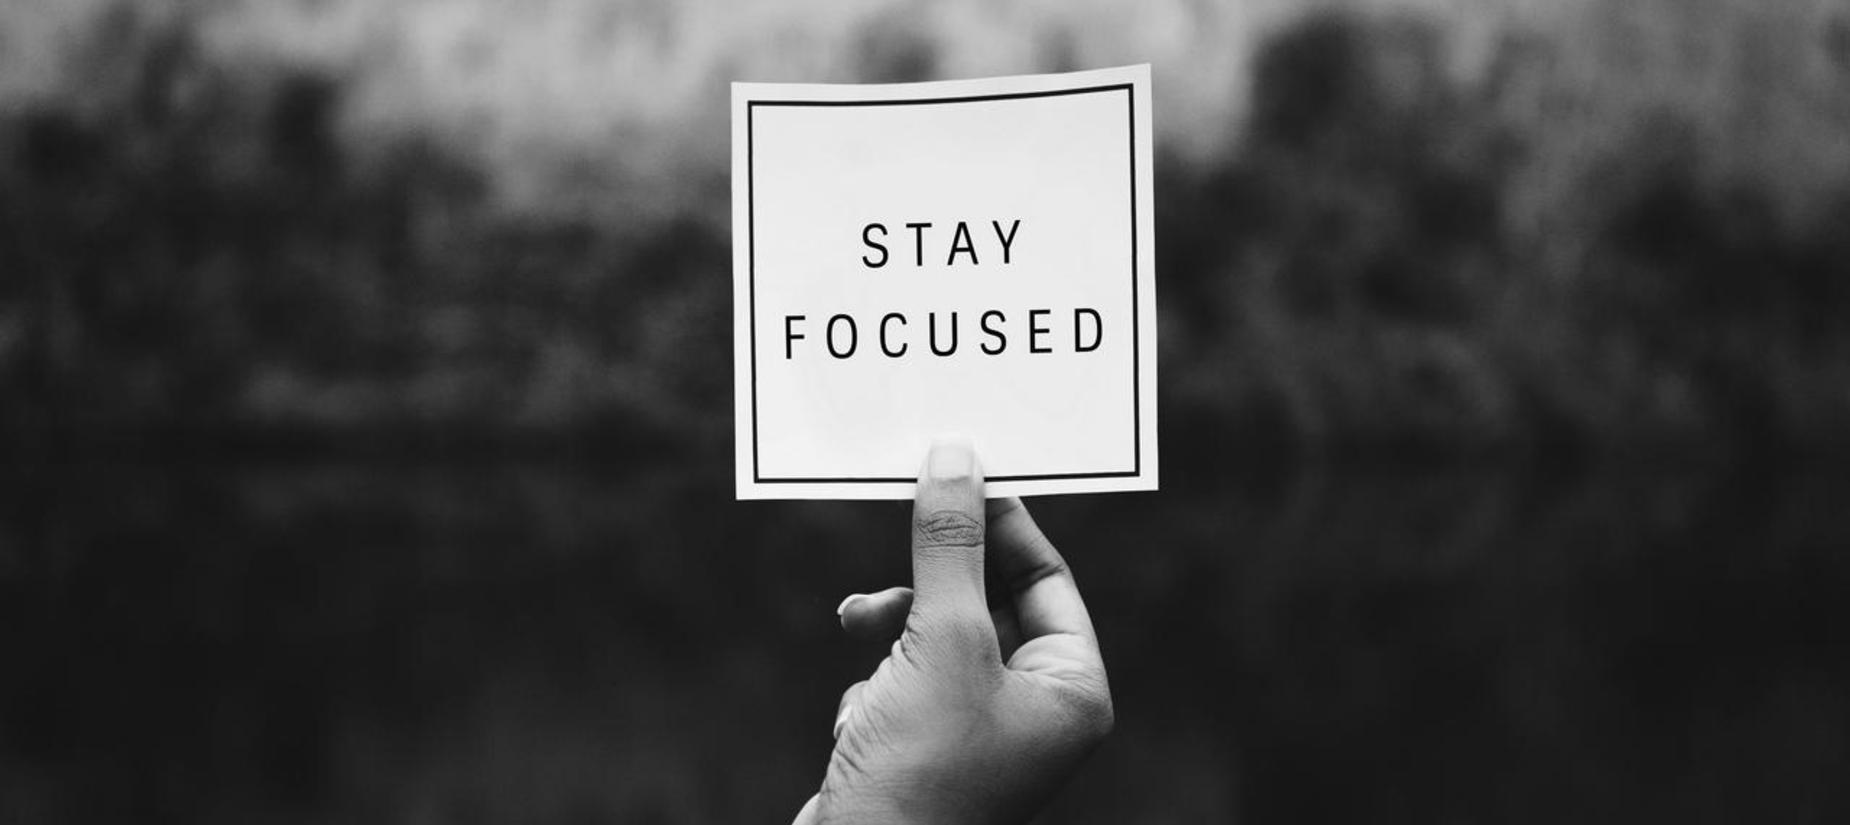 Stay focused